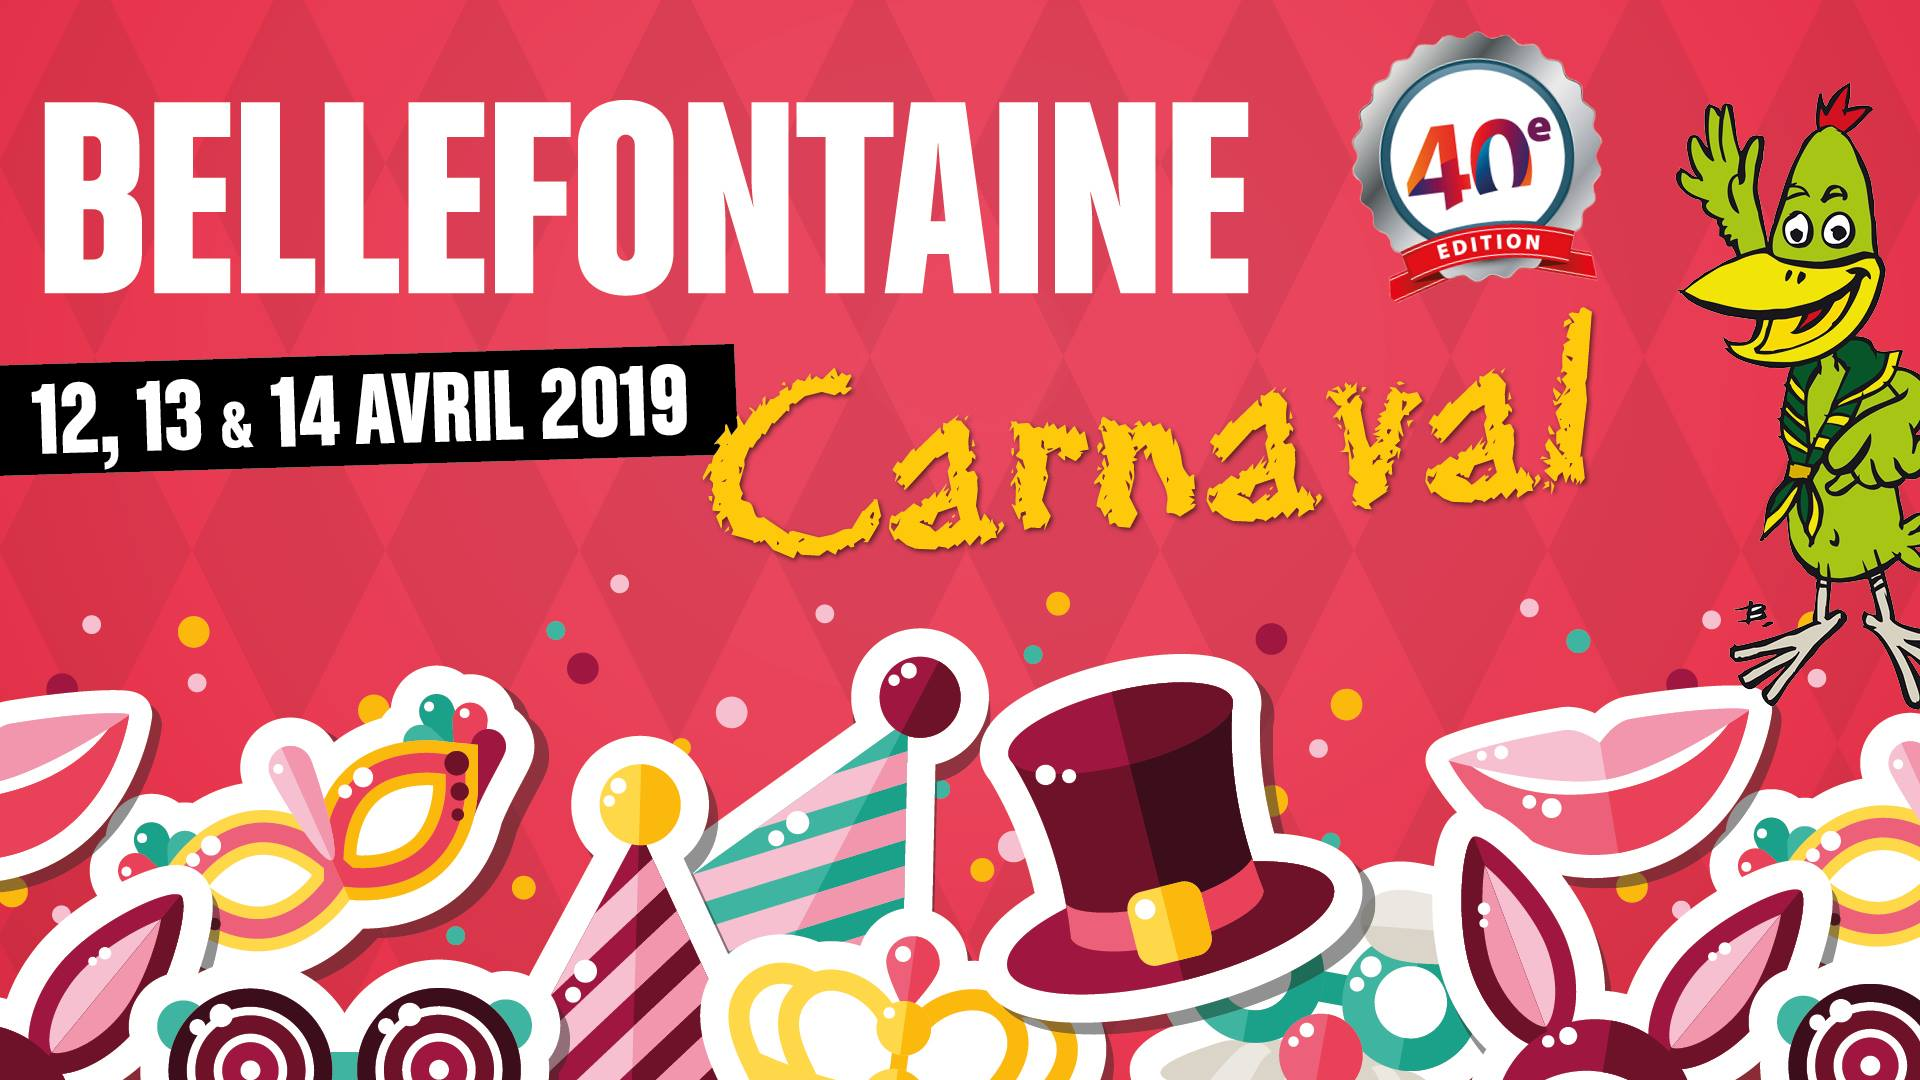 Carnaval de Bellefontaine @ Bellefontaine